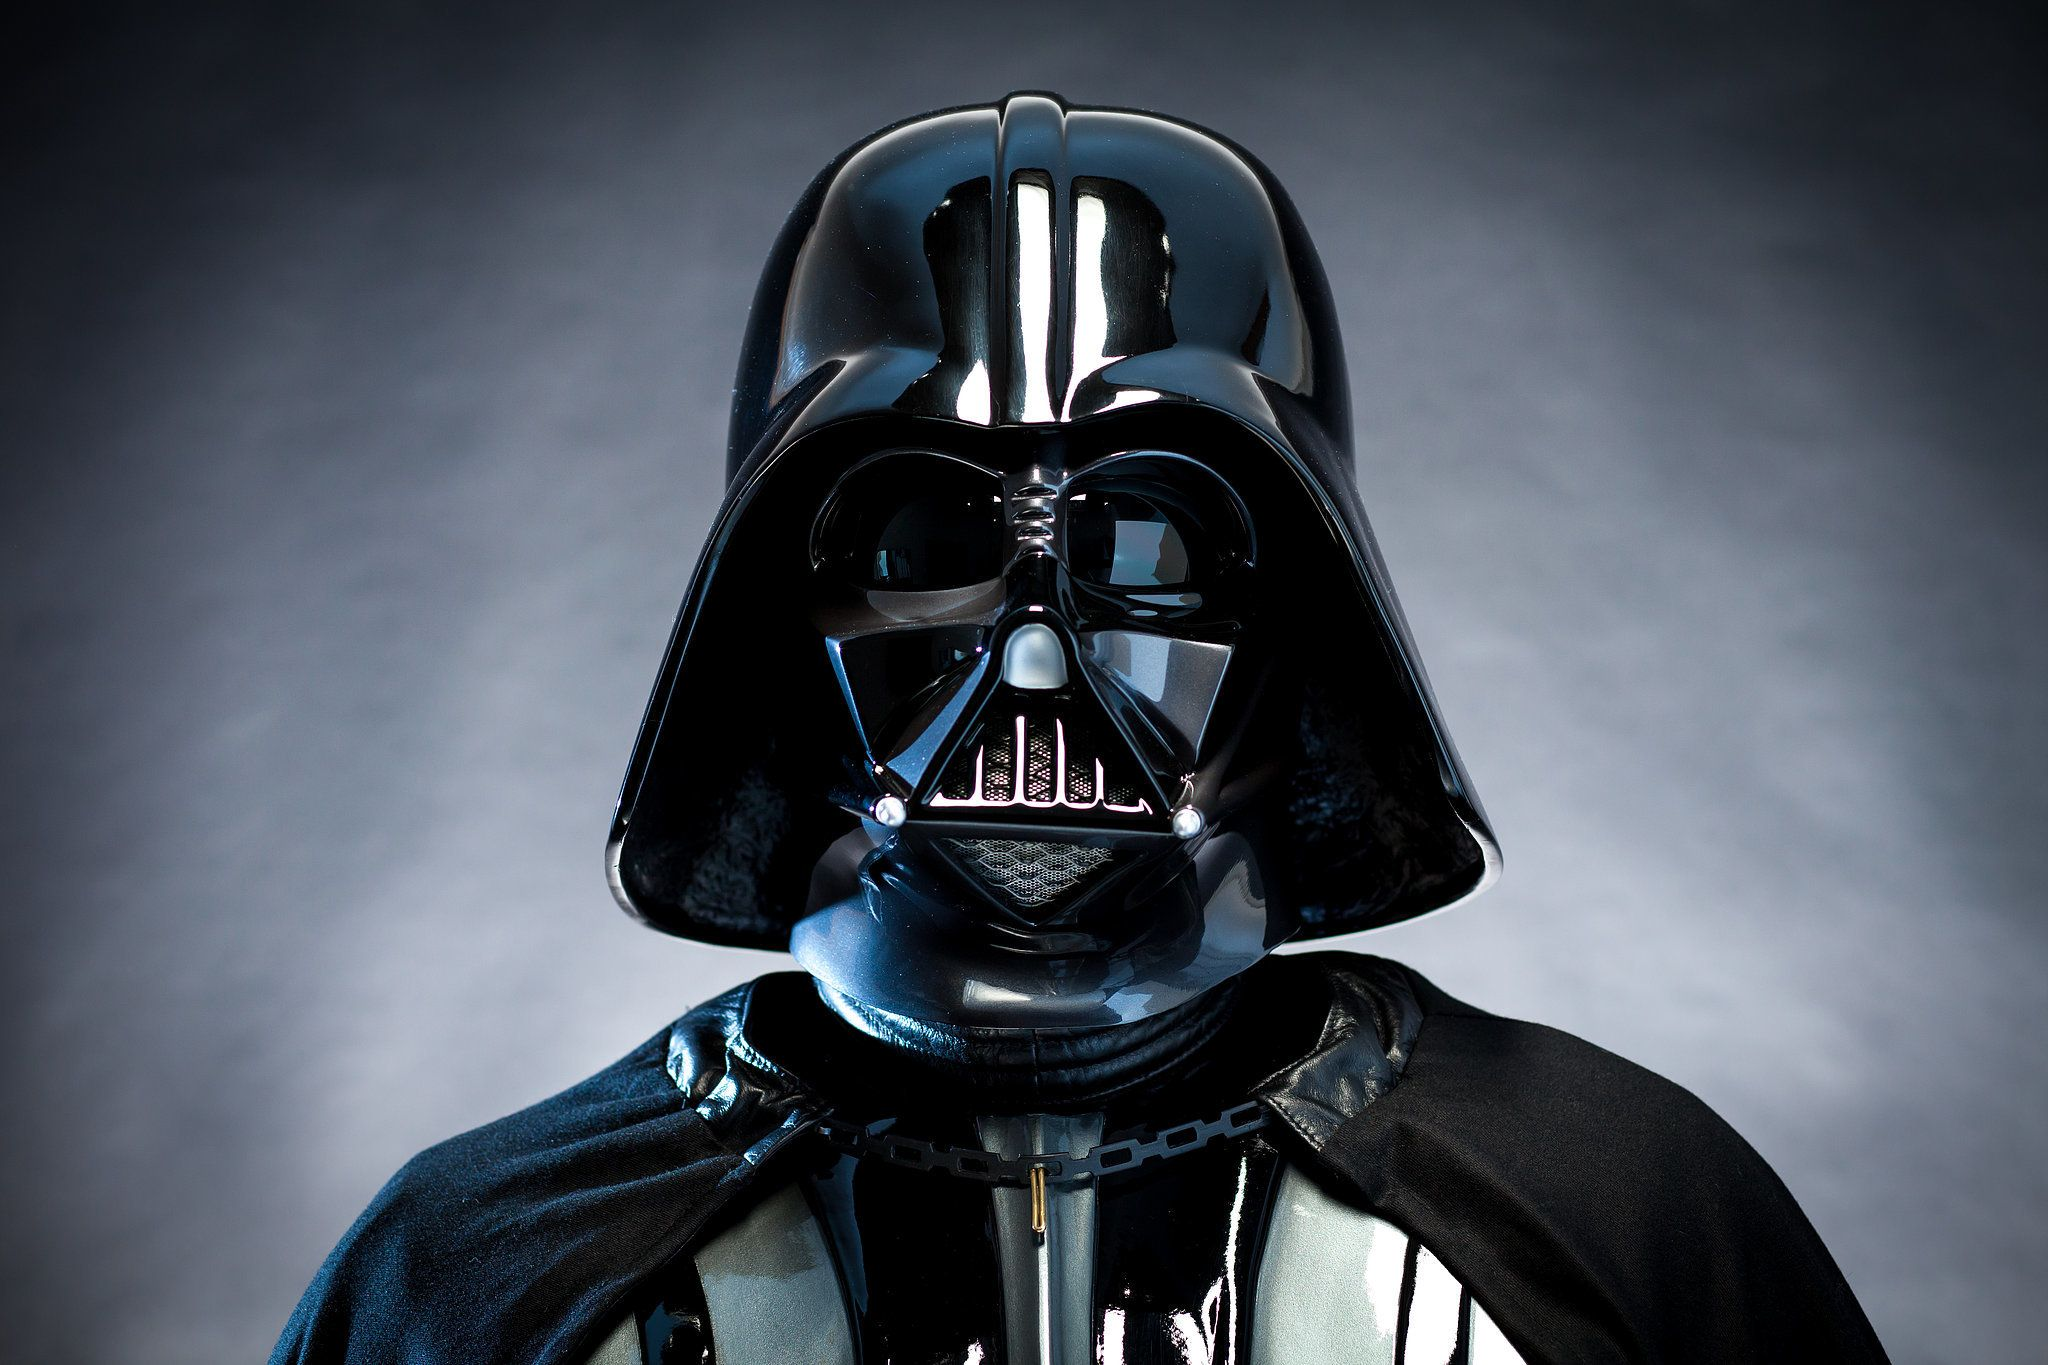 2. Darth Vader – Star Wars